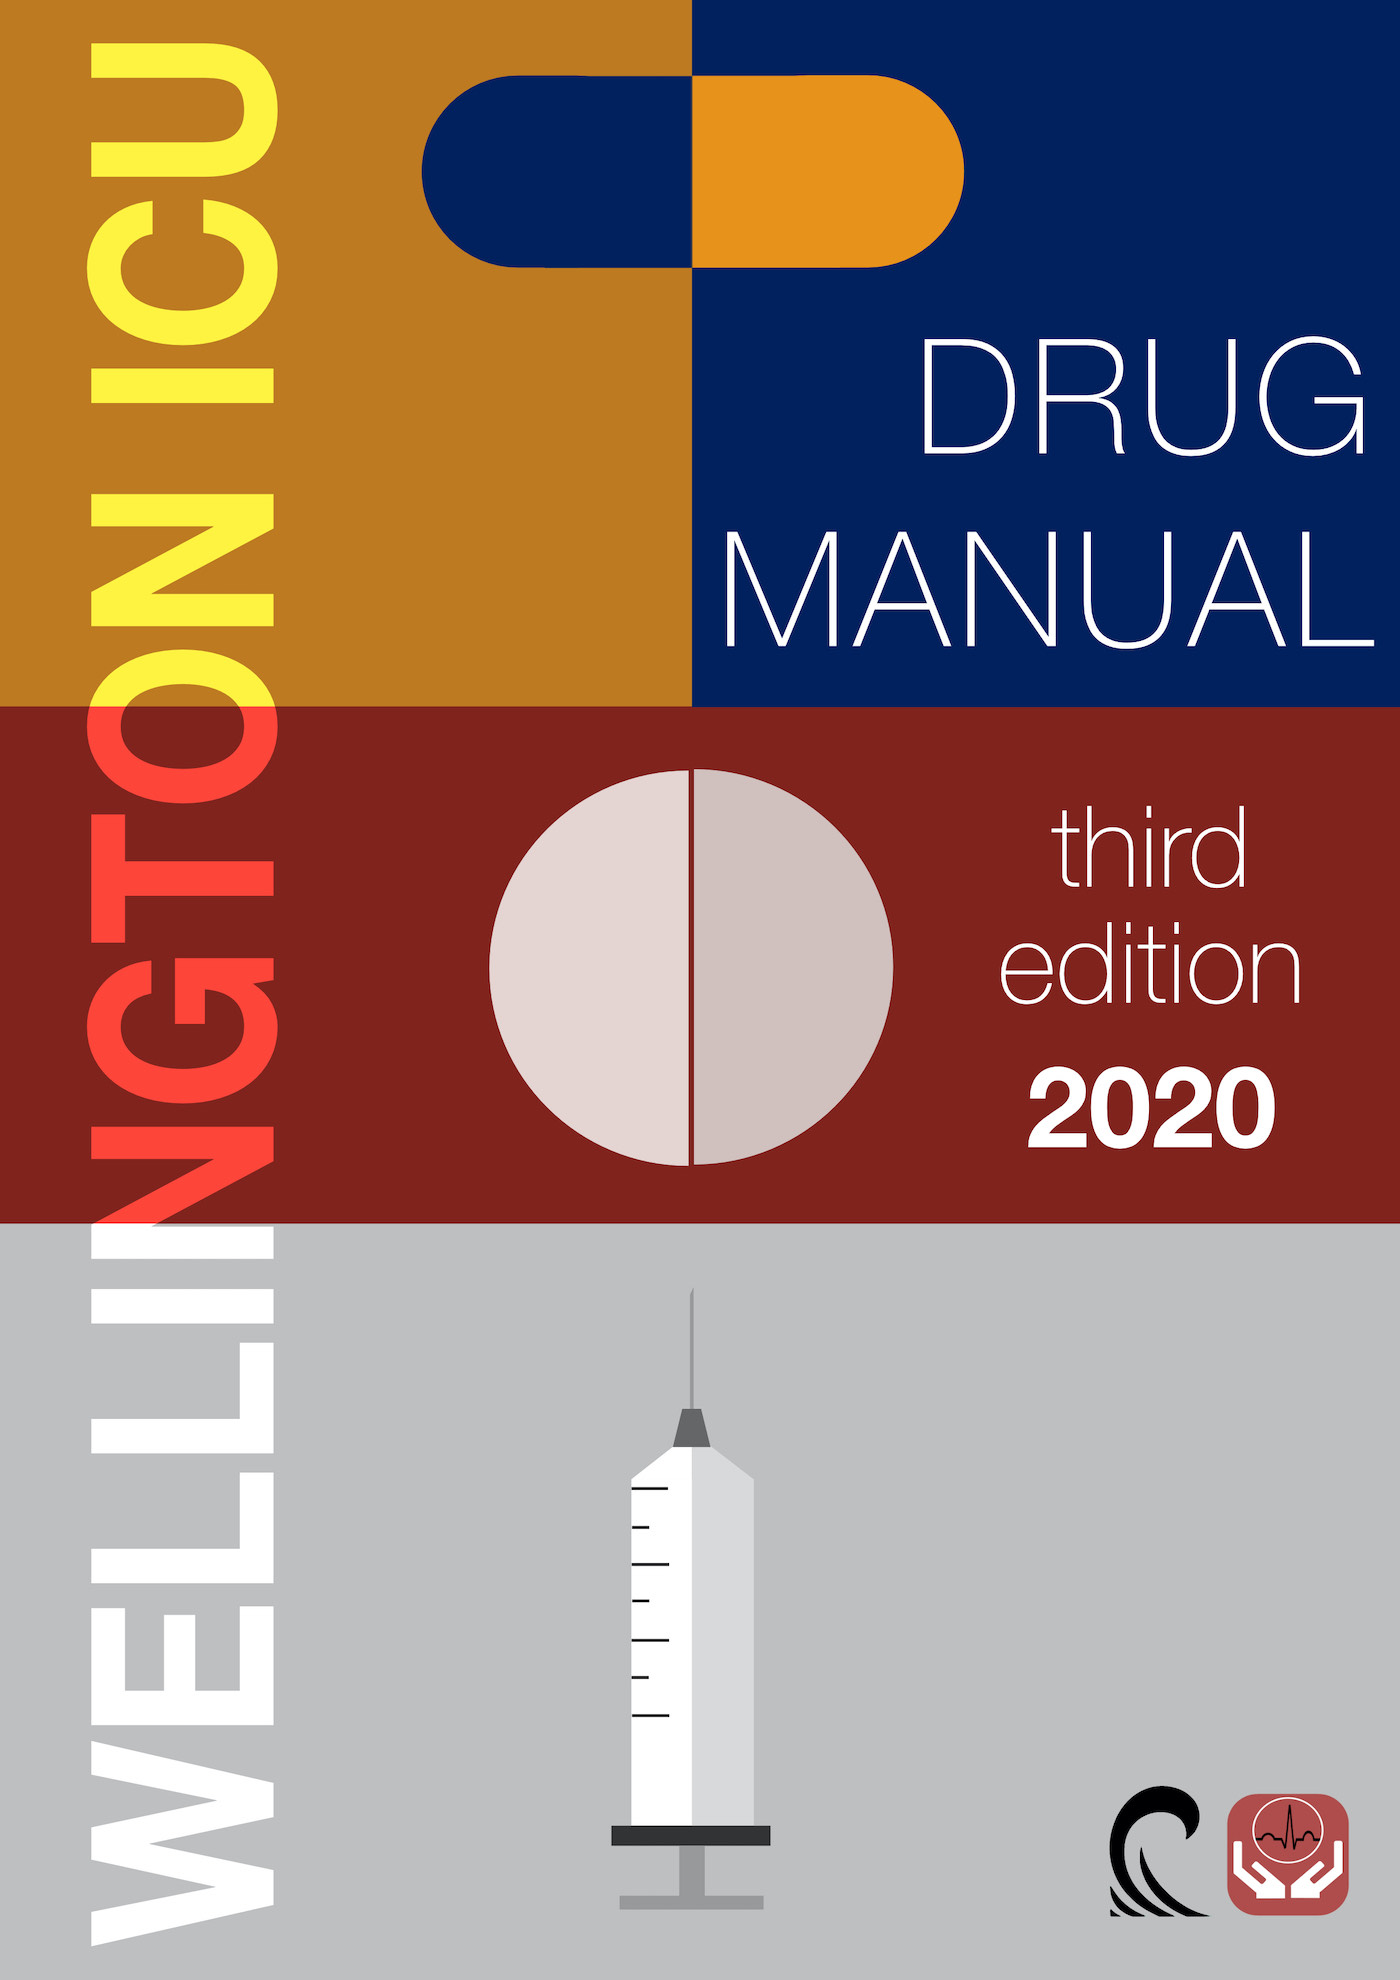 Wellington ICU Drug Manual 2015